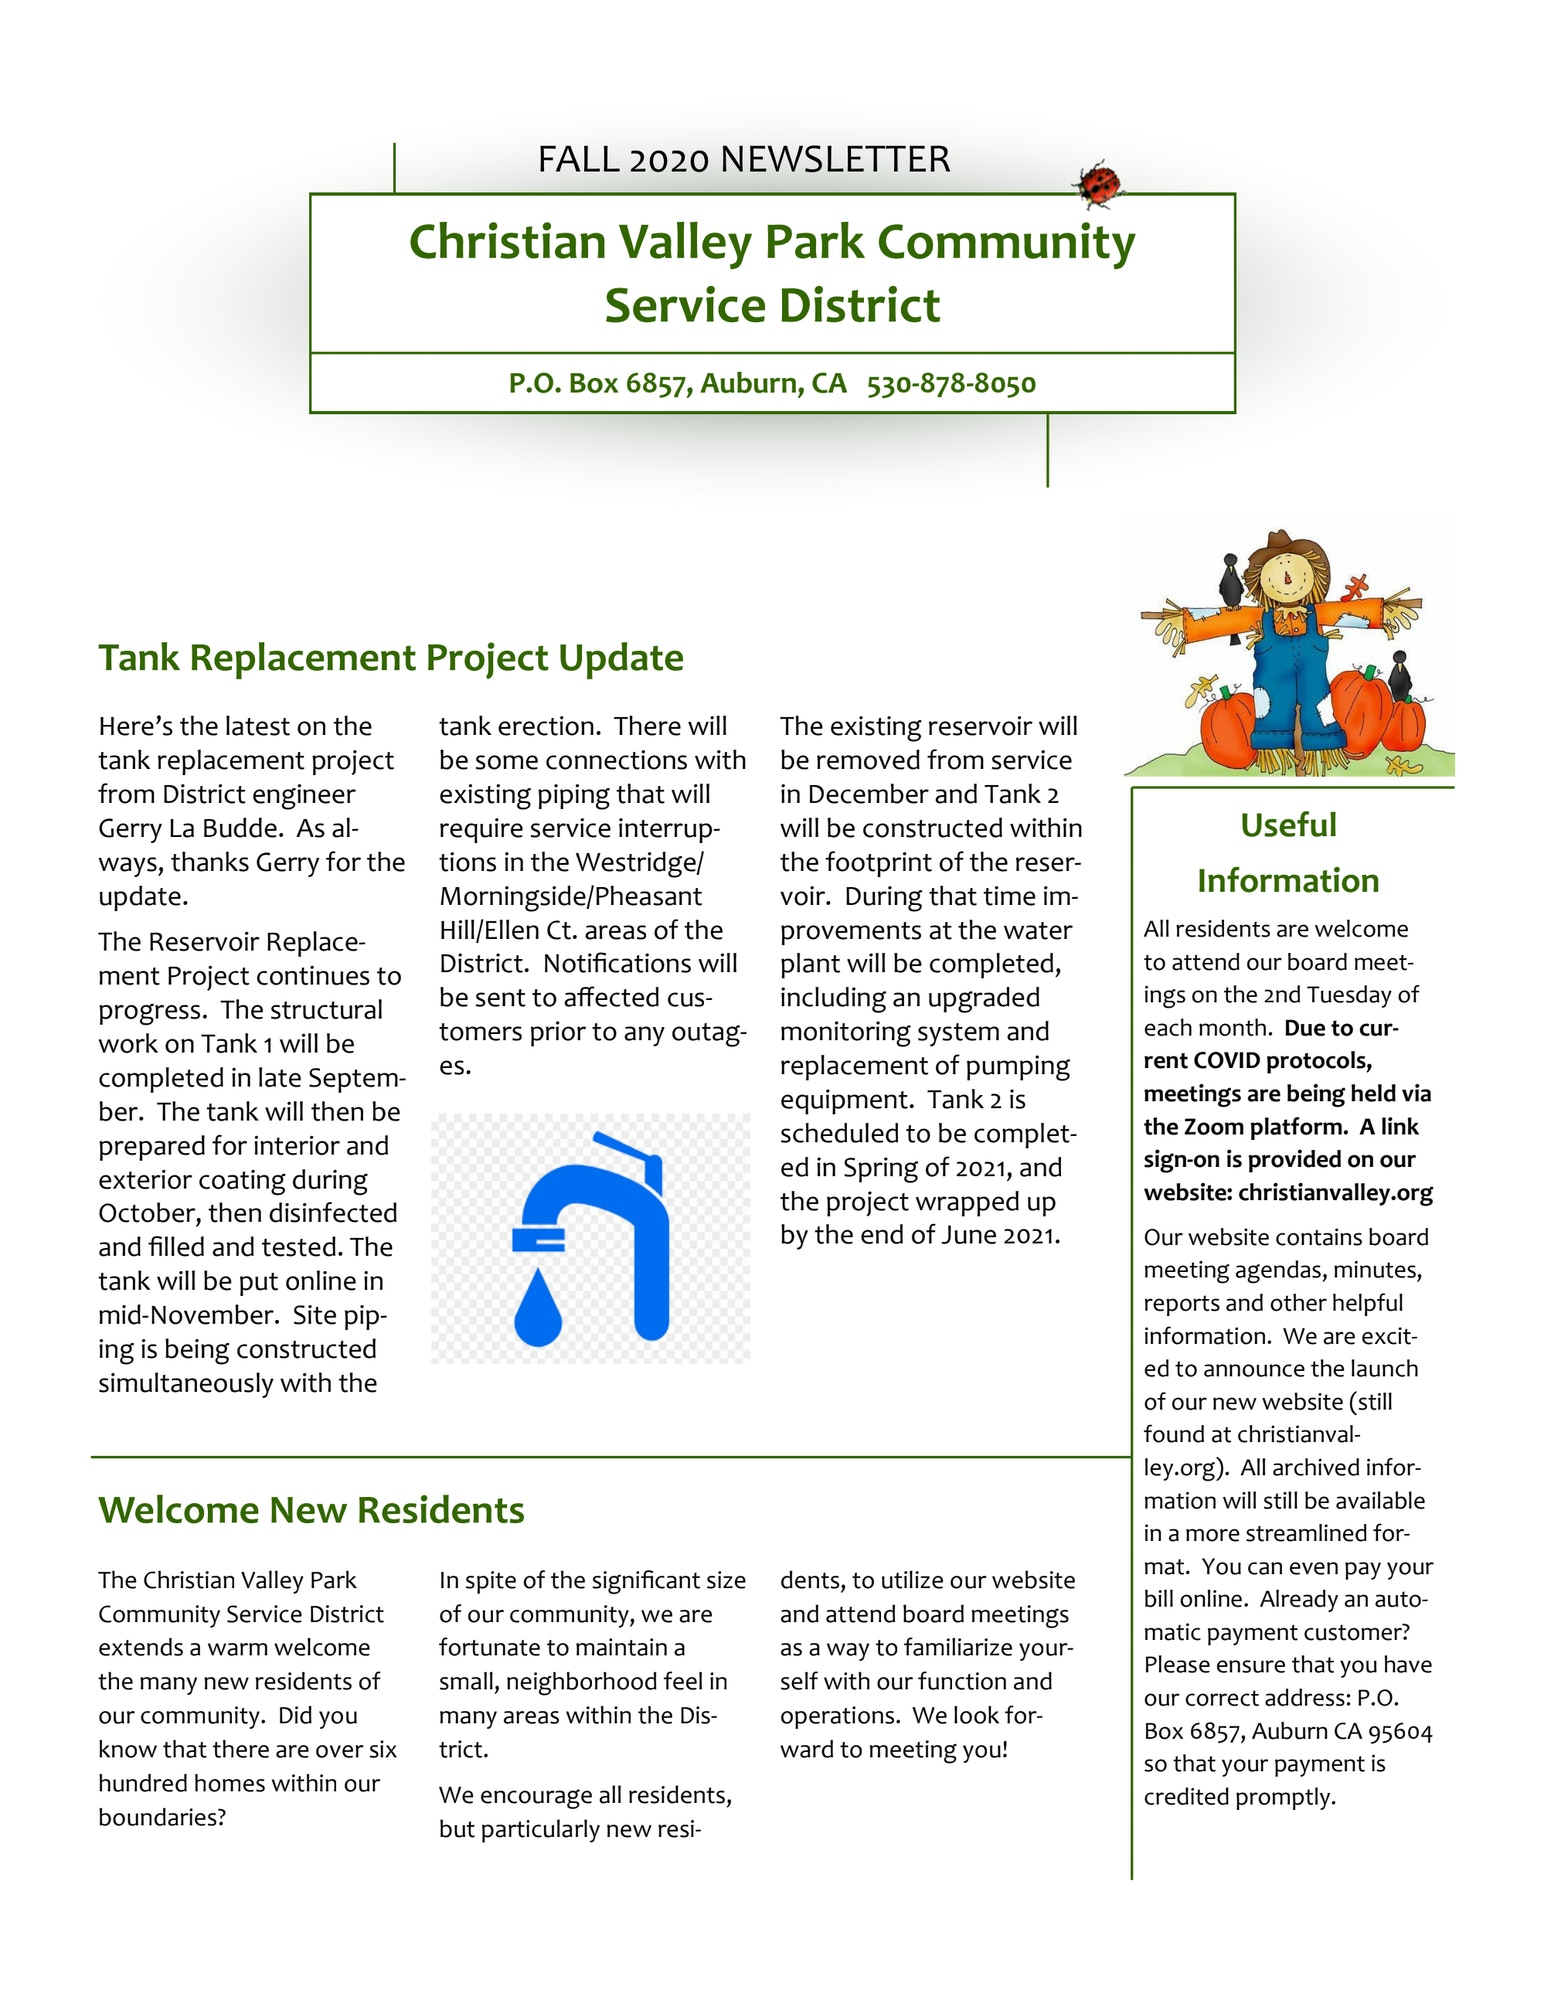 PDF image of the CVPCSD October 2020 Quarterly Newsletter page 1 of 2